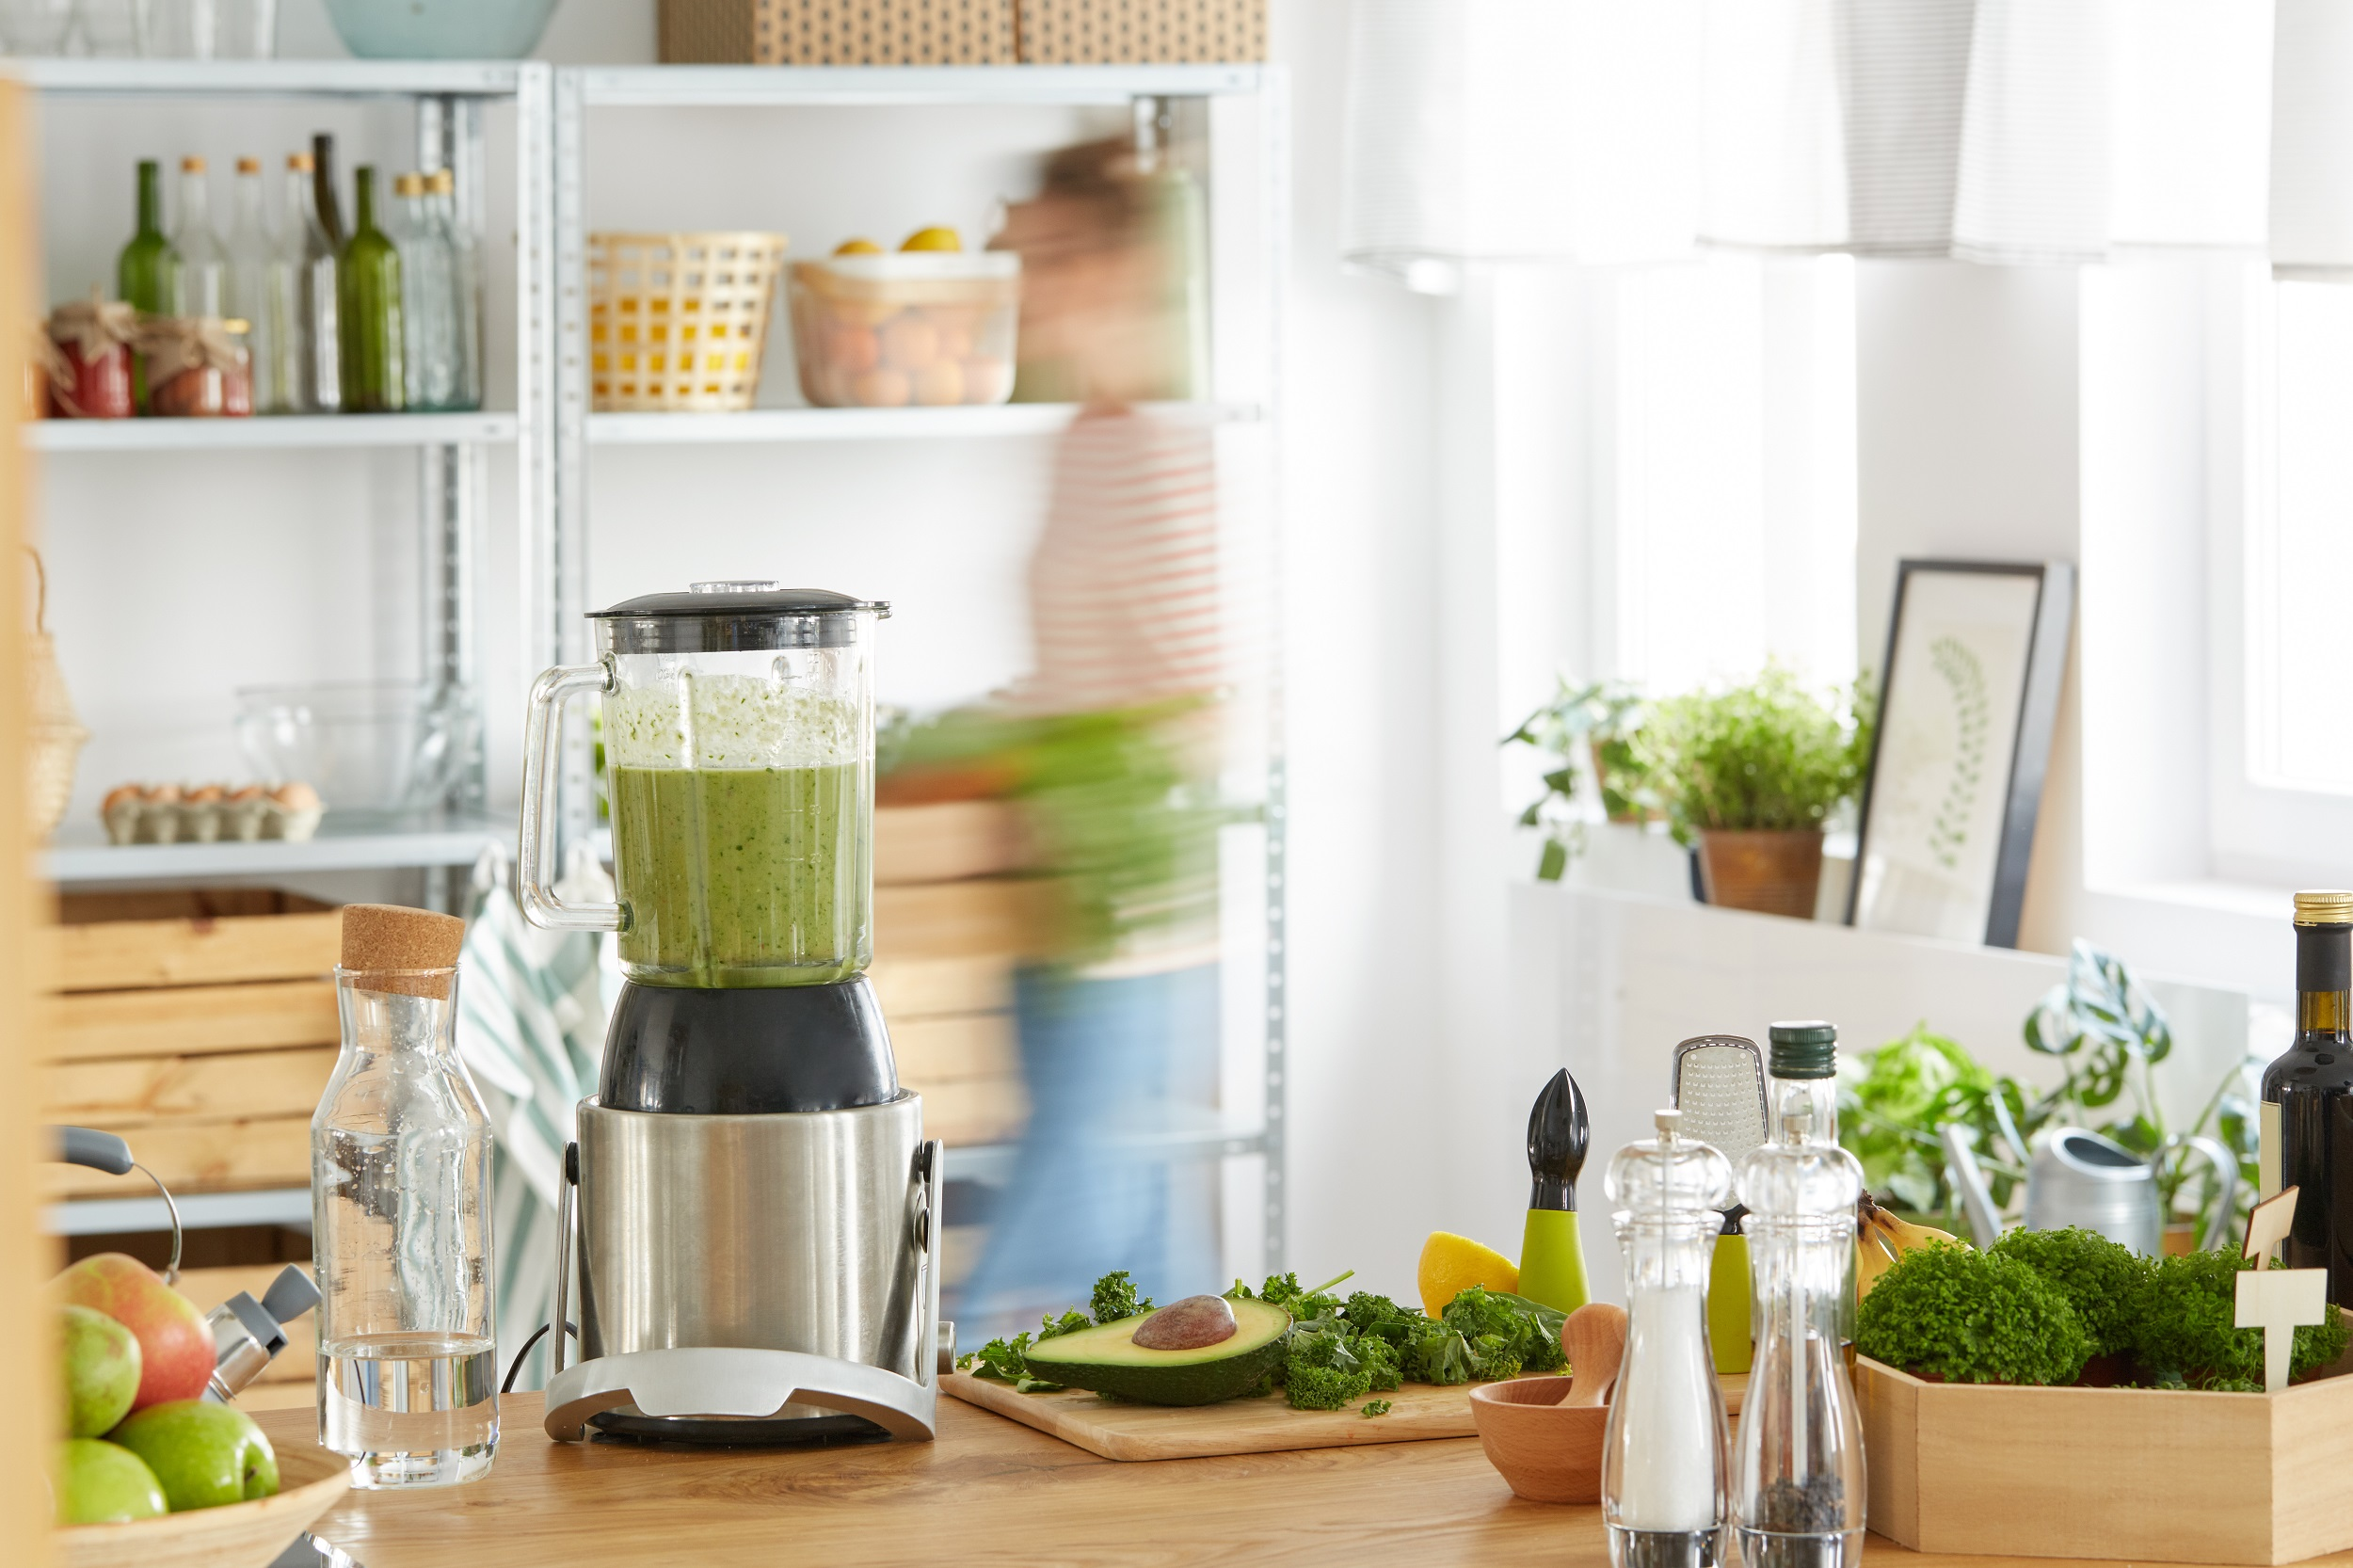 Kitchen Wood Table Blender Green Smoothie